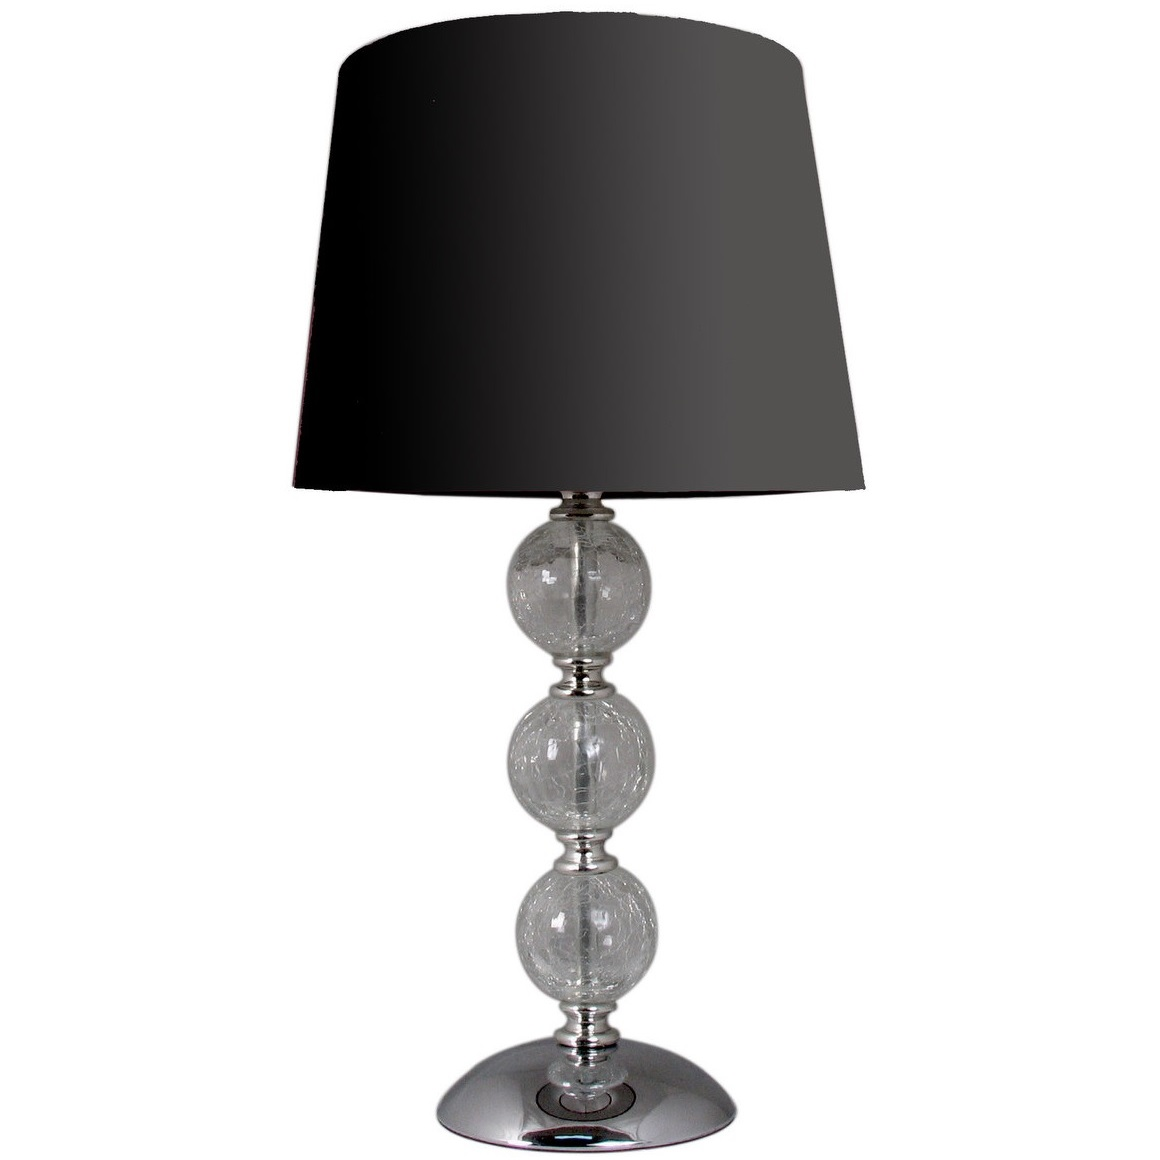 Glass Crackle Lamp Crackle Glass Ball Table Lamp Black